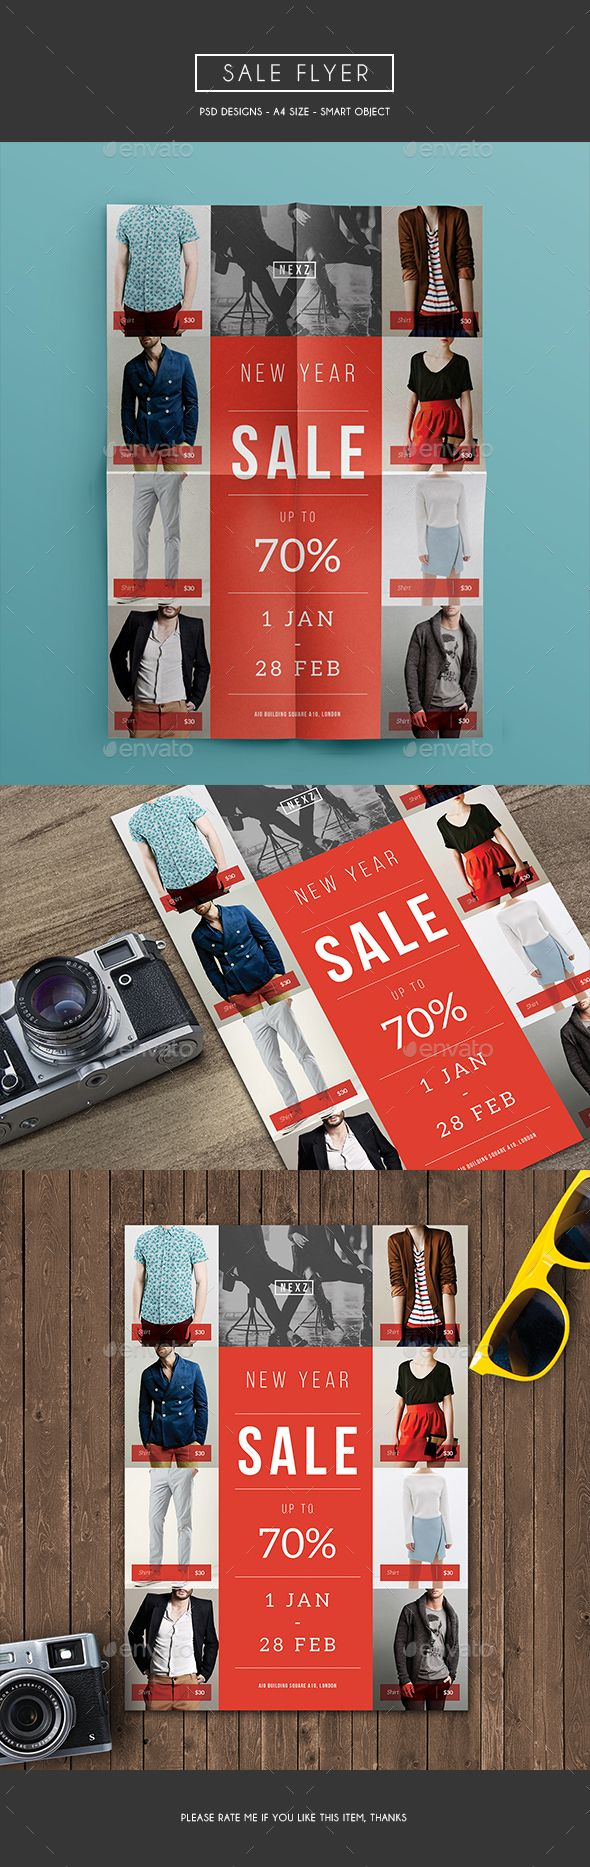 Sale Flyer Template PSD. Download here: http://graphicriver.net/item/sale-flyer/15991586?ref=ksioks